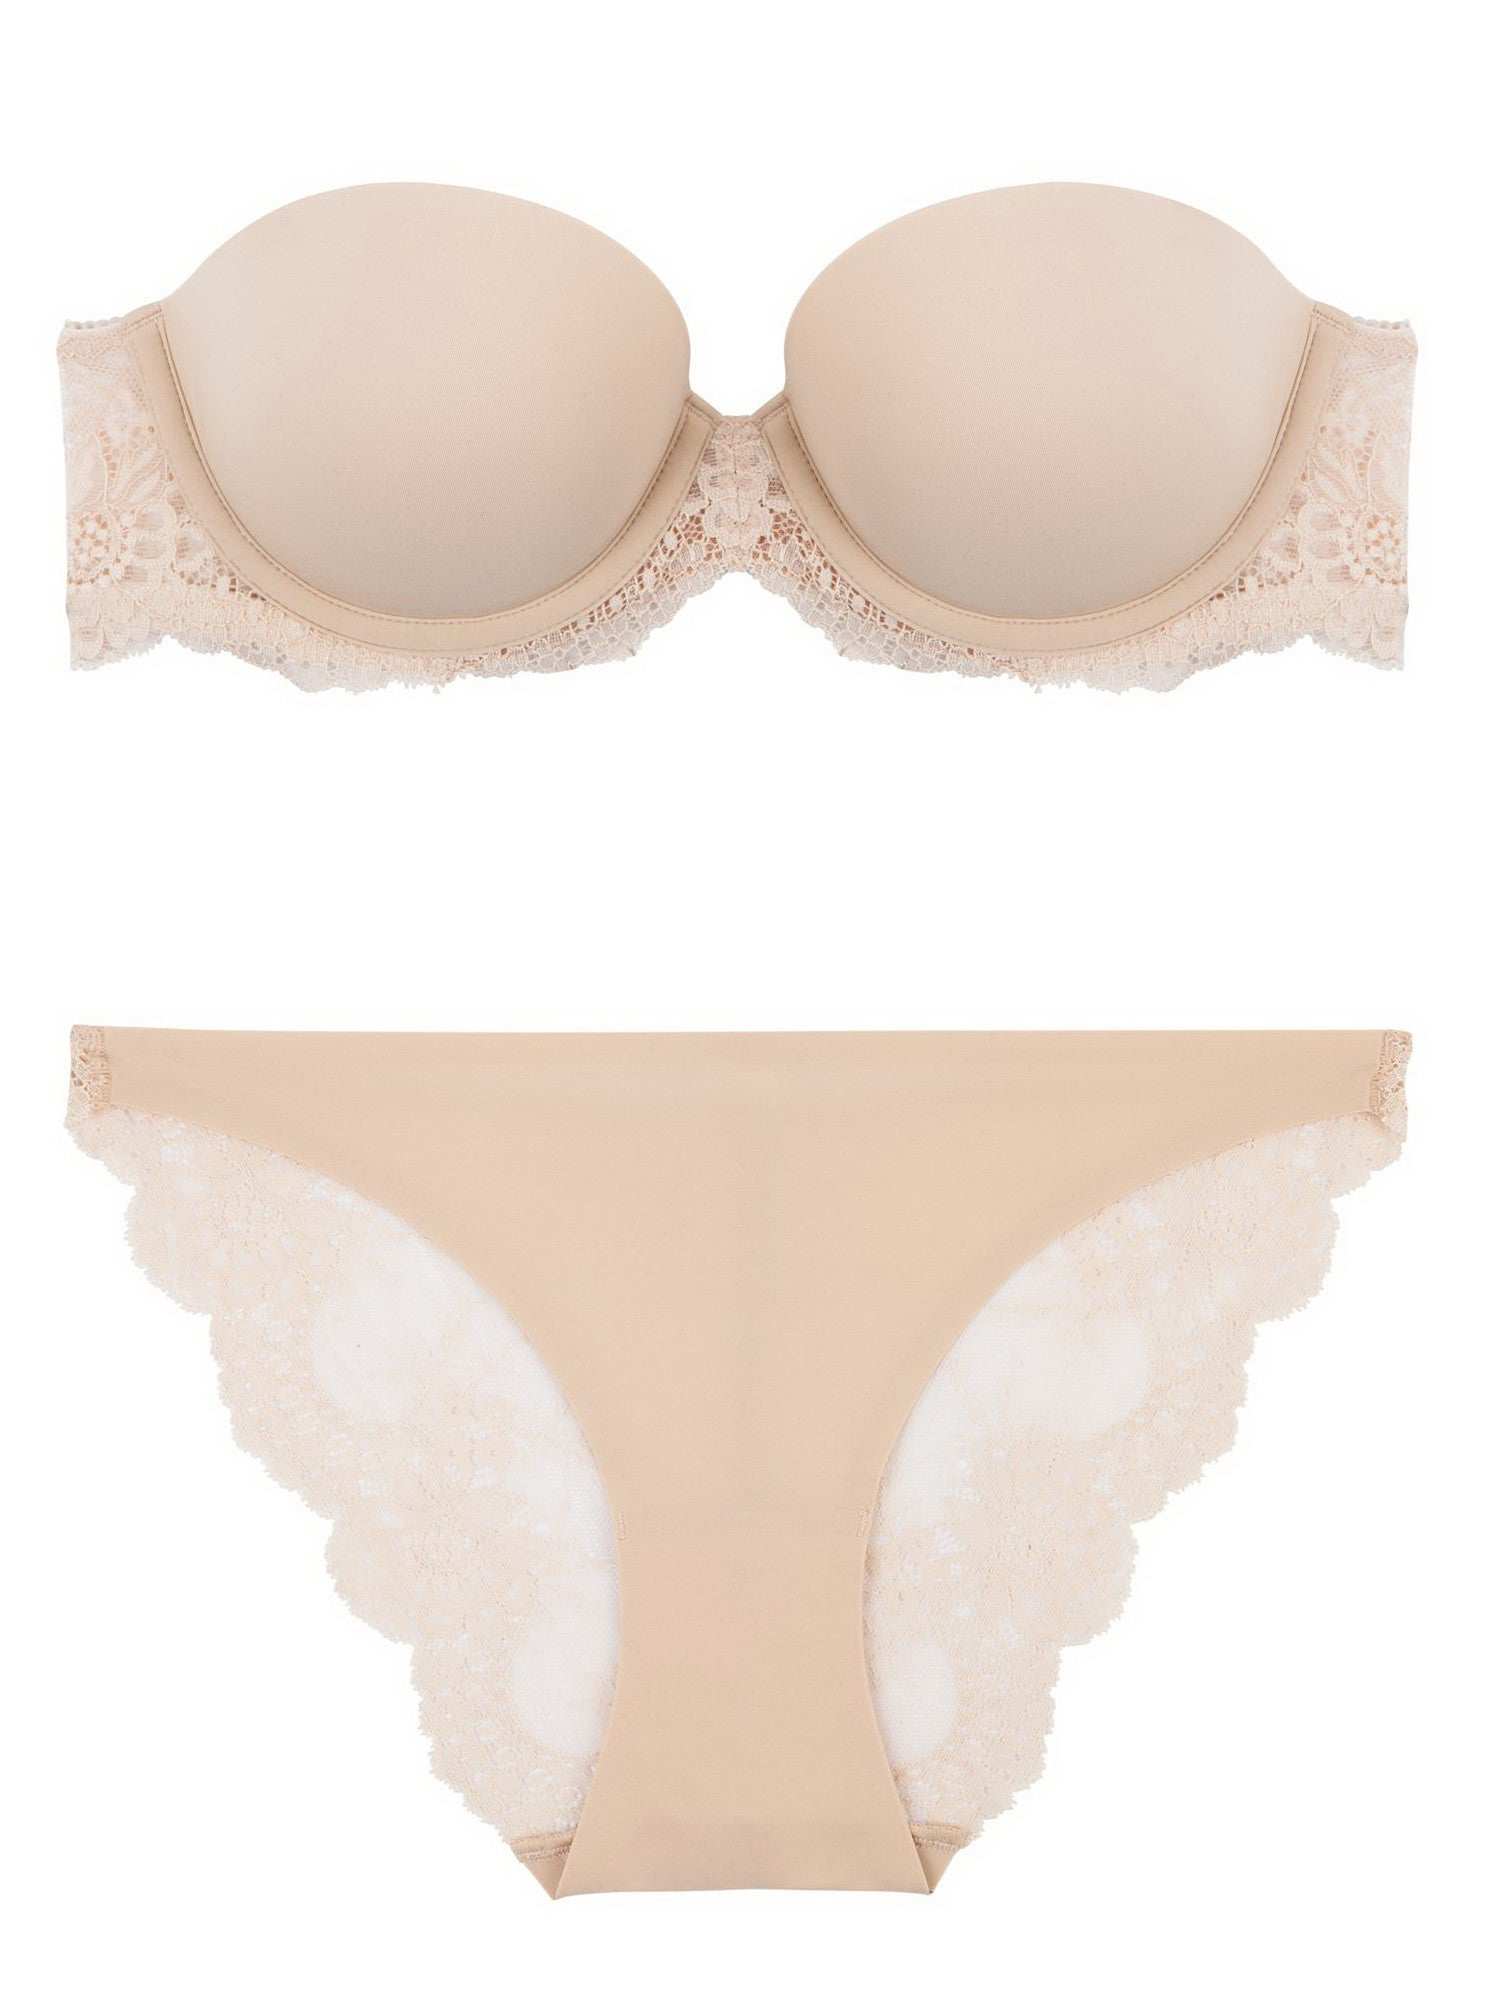 Stella McCartney Lingerie New Smooth & Lace Brief Bikini - Knickers & Pearls Boutique - 2